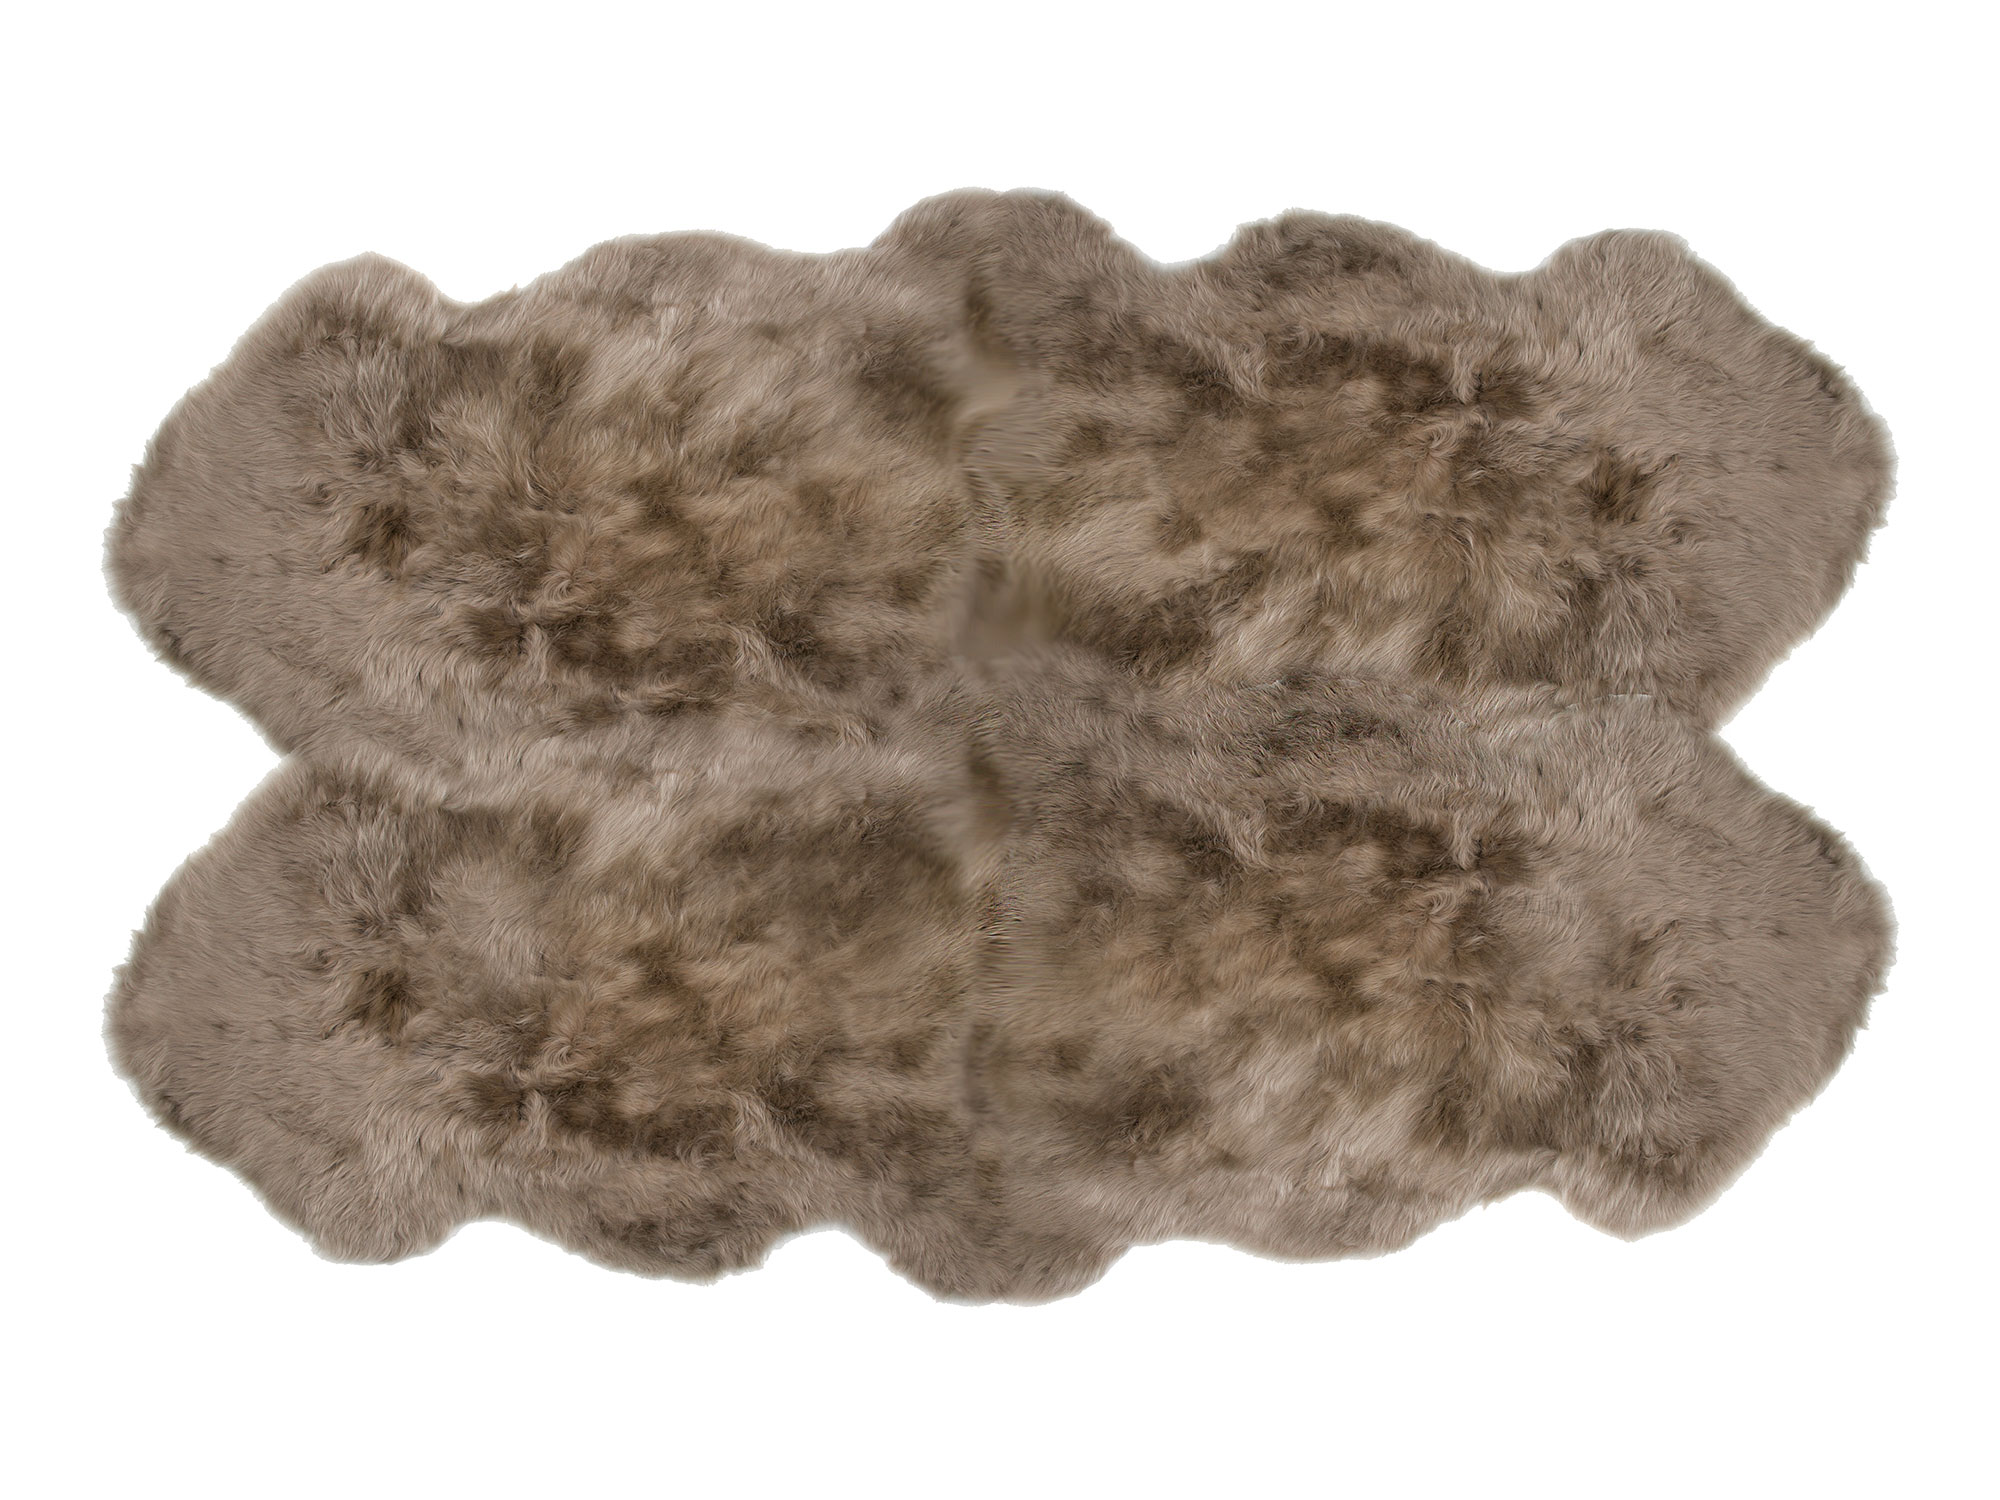 Sheepskin 4 Pelt Large Fur Rugs Taupe